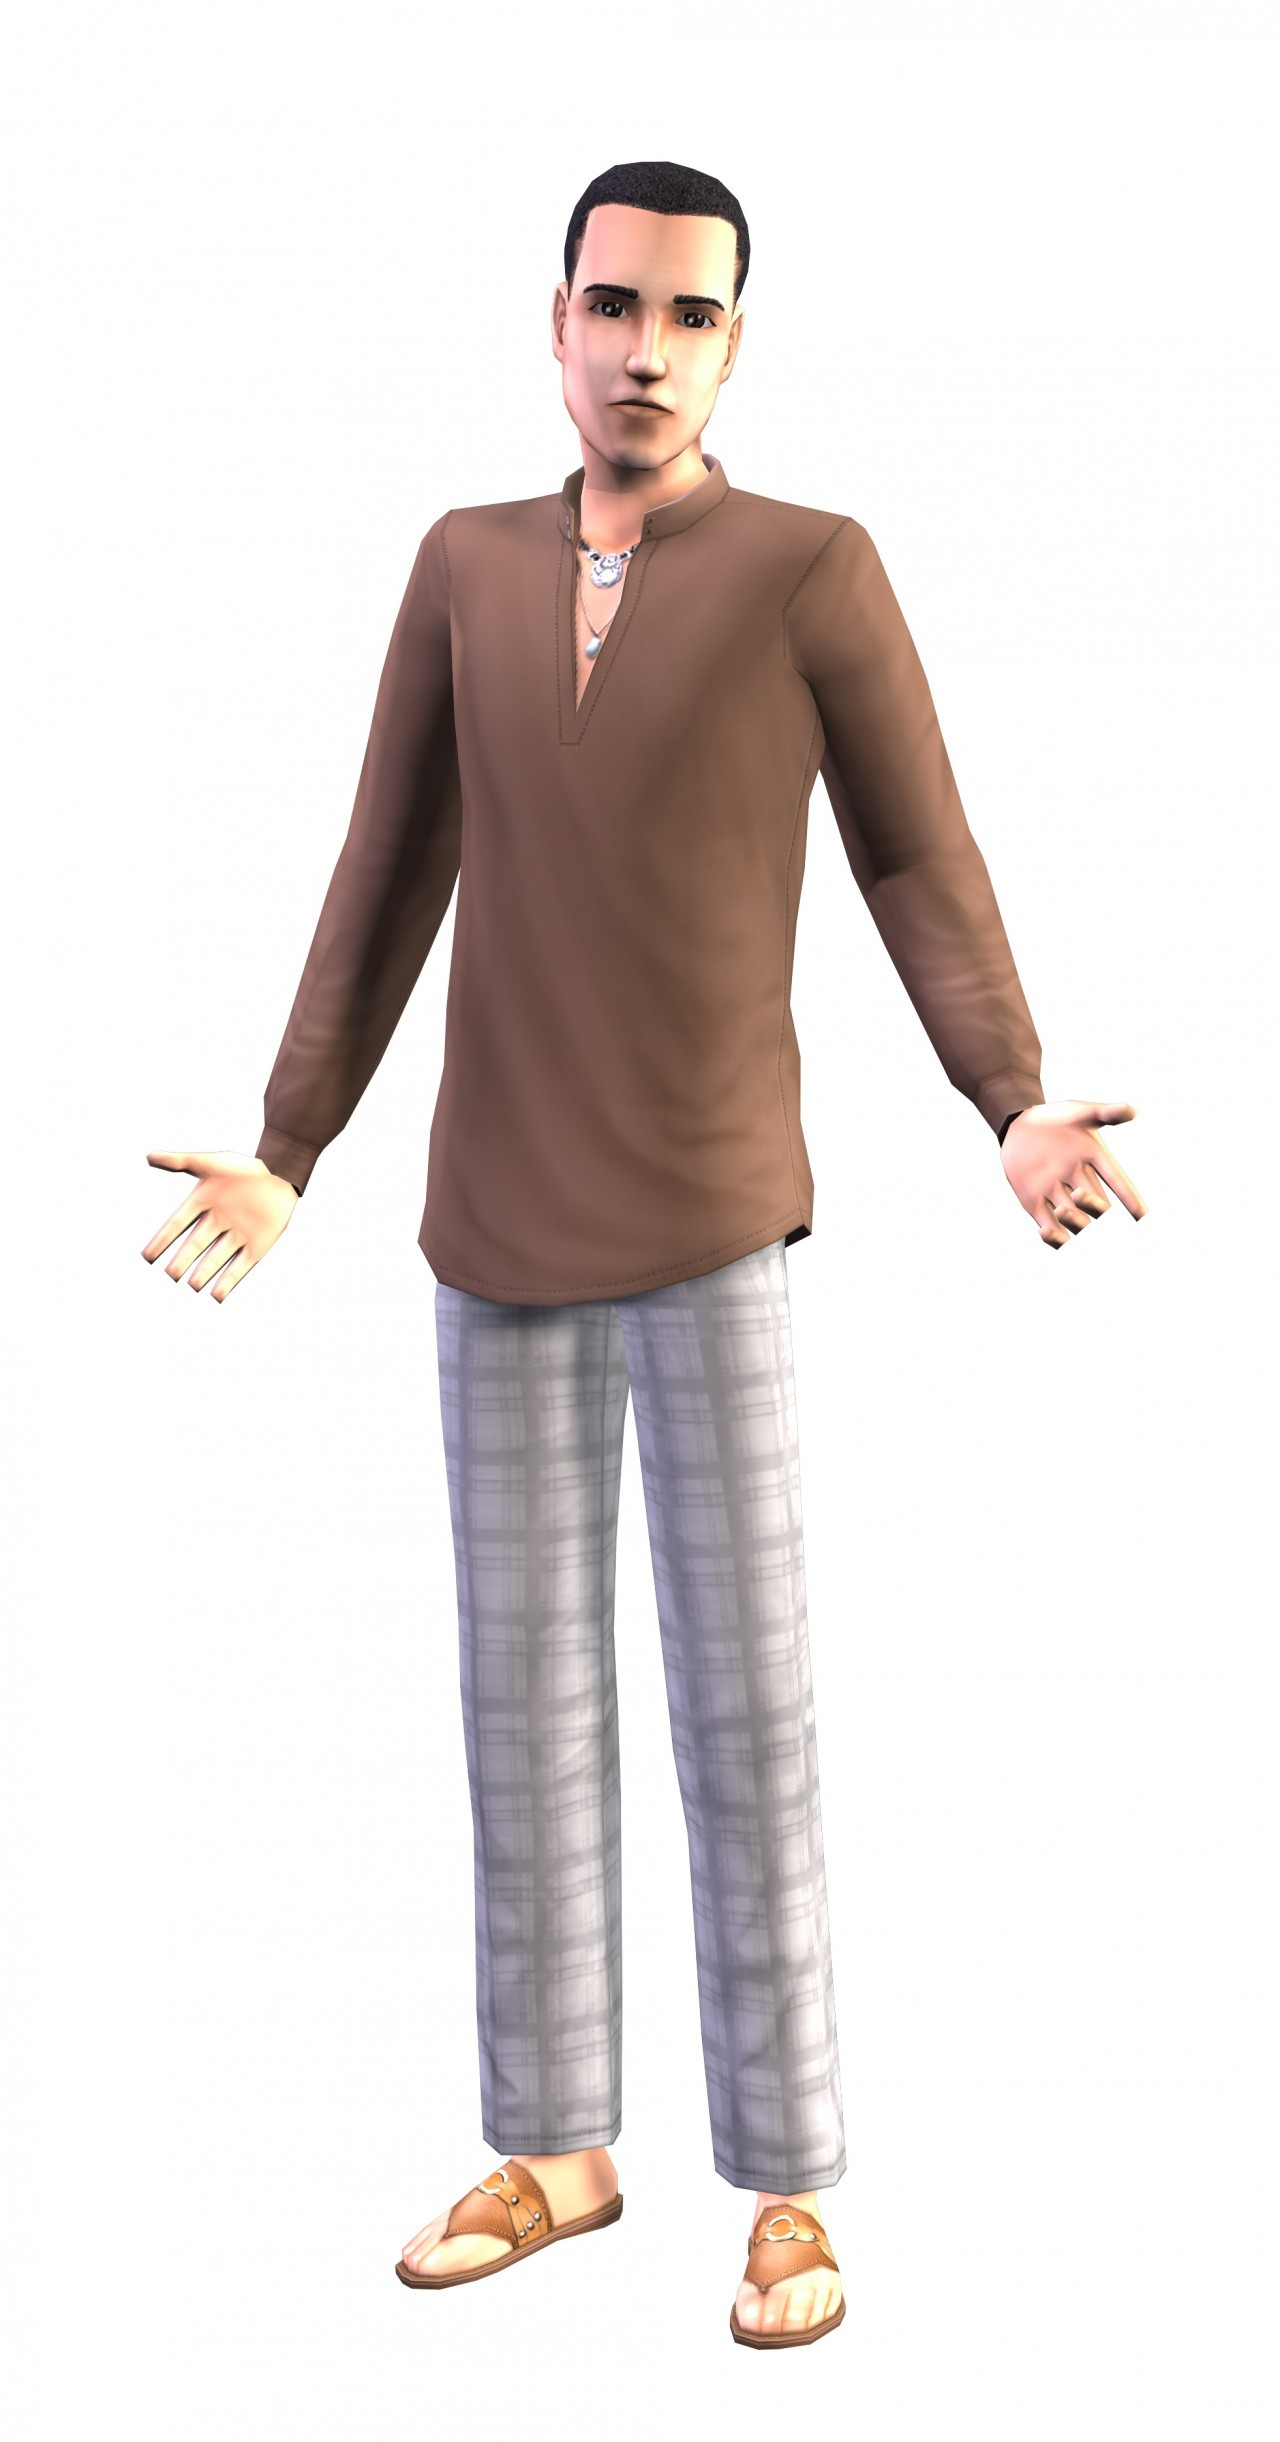 Sims 2 fashion crack How to get mods to work? The Sims Forums